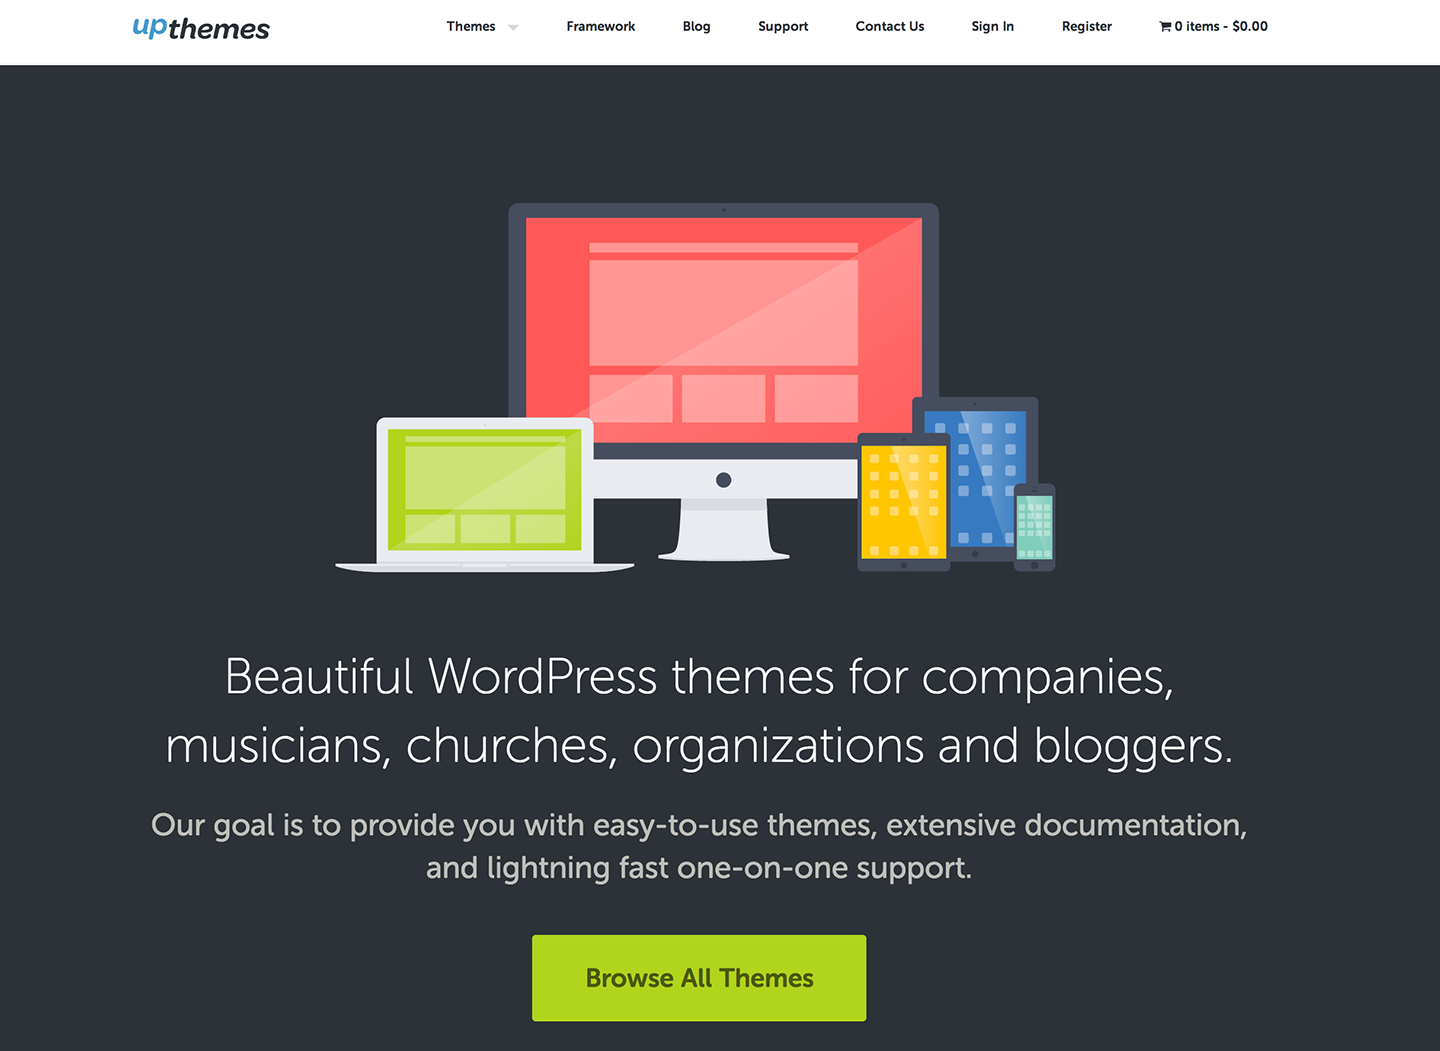 UpThemes coupon